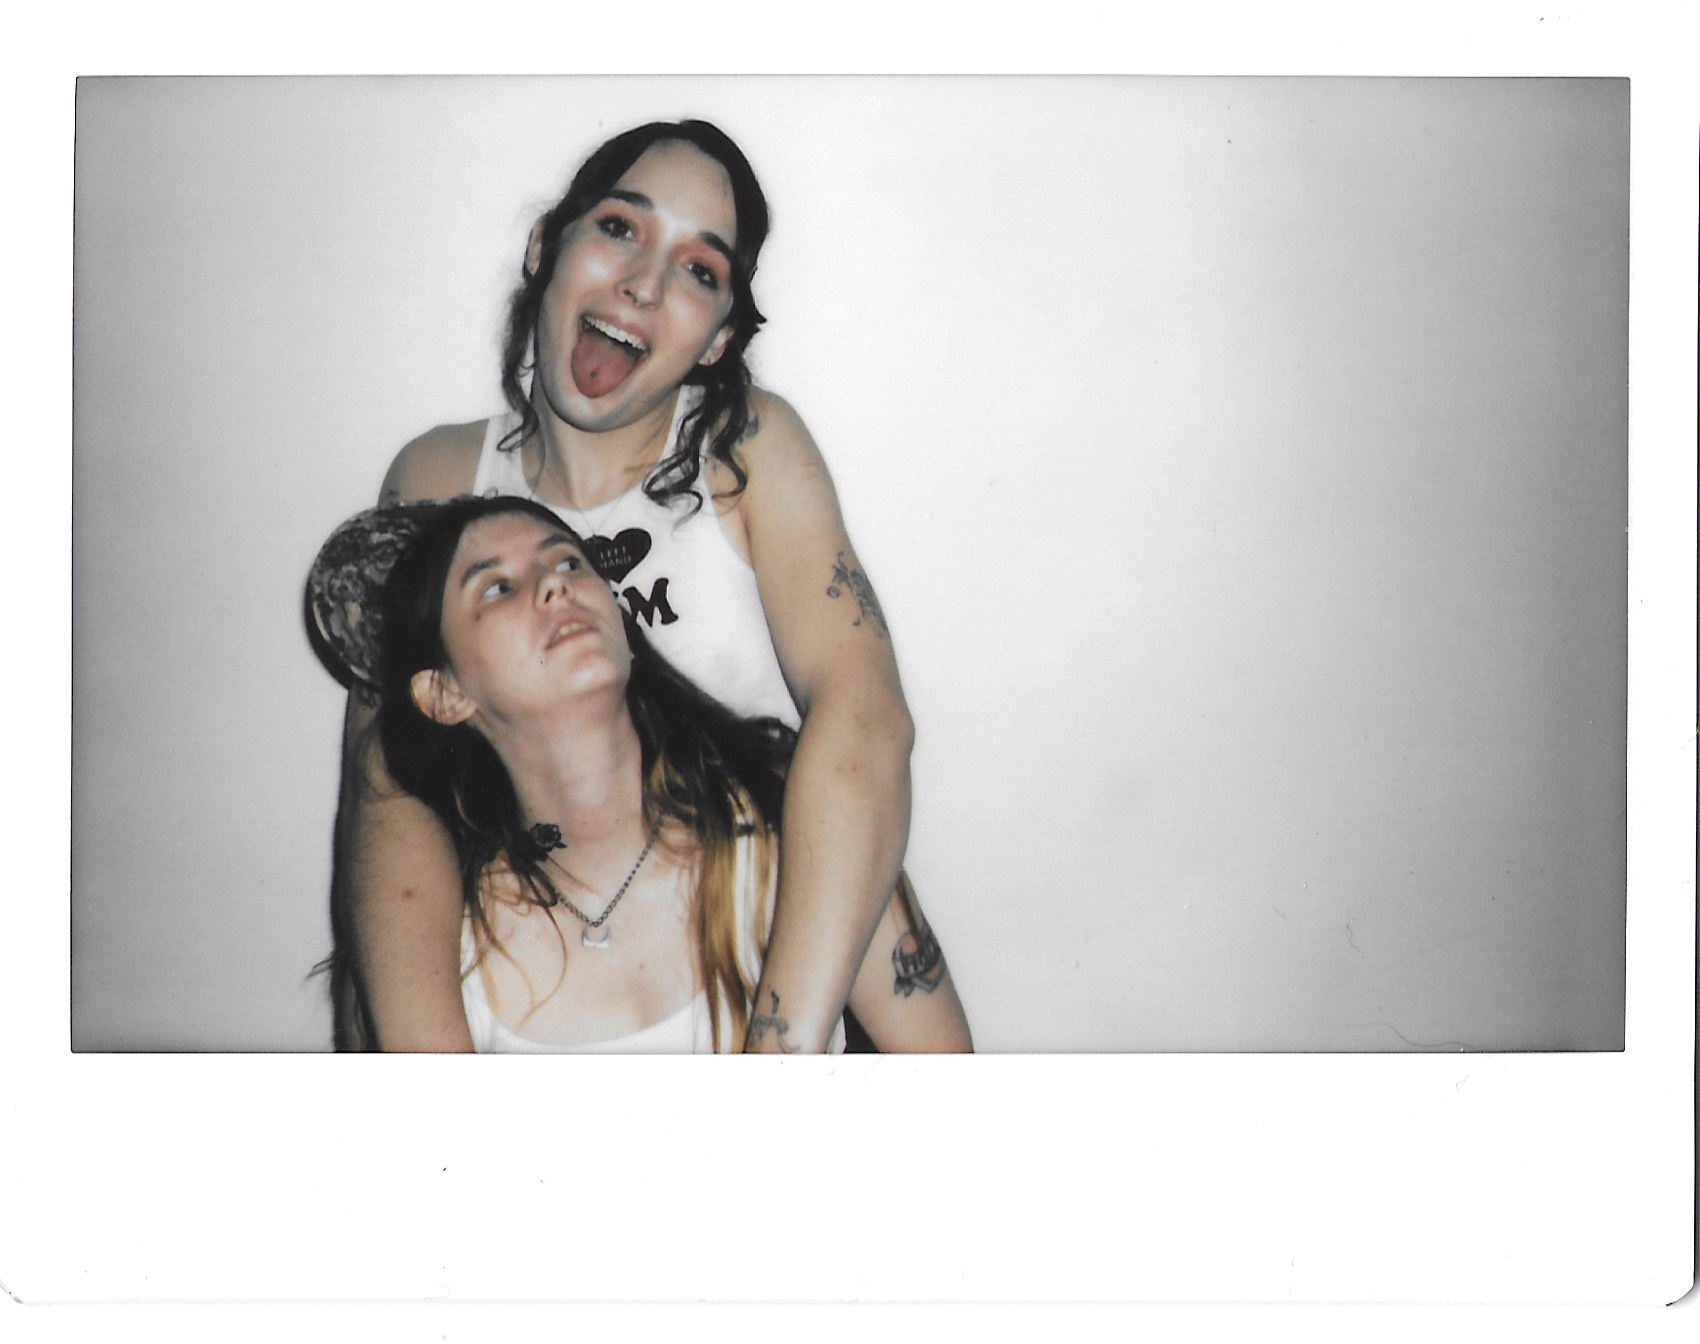 magdalena galen and ripley embracing and sticking their tongue out